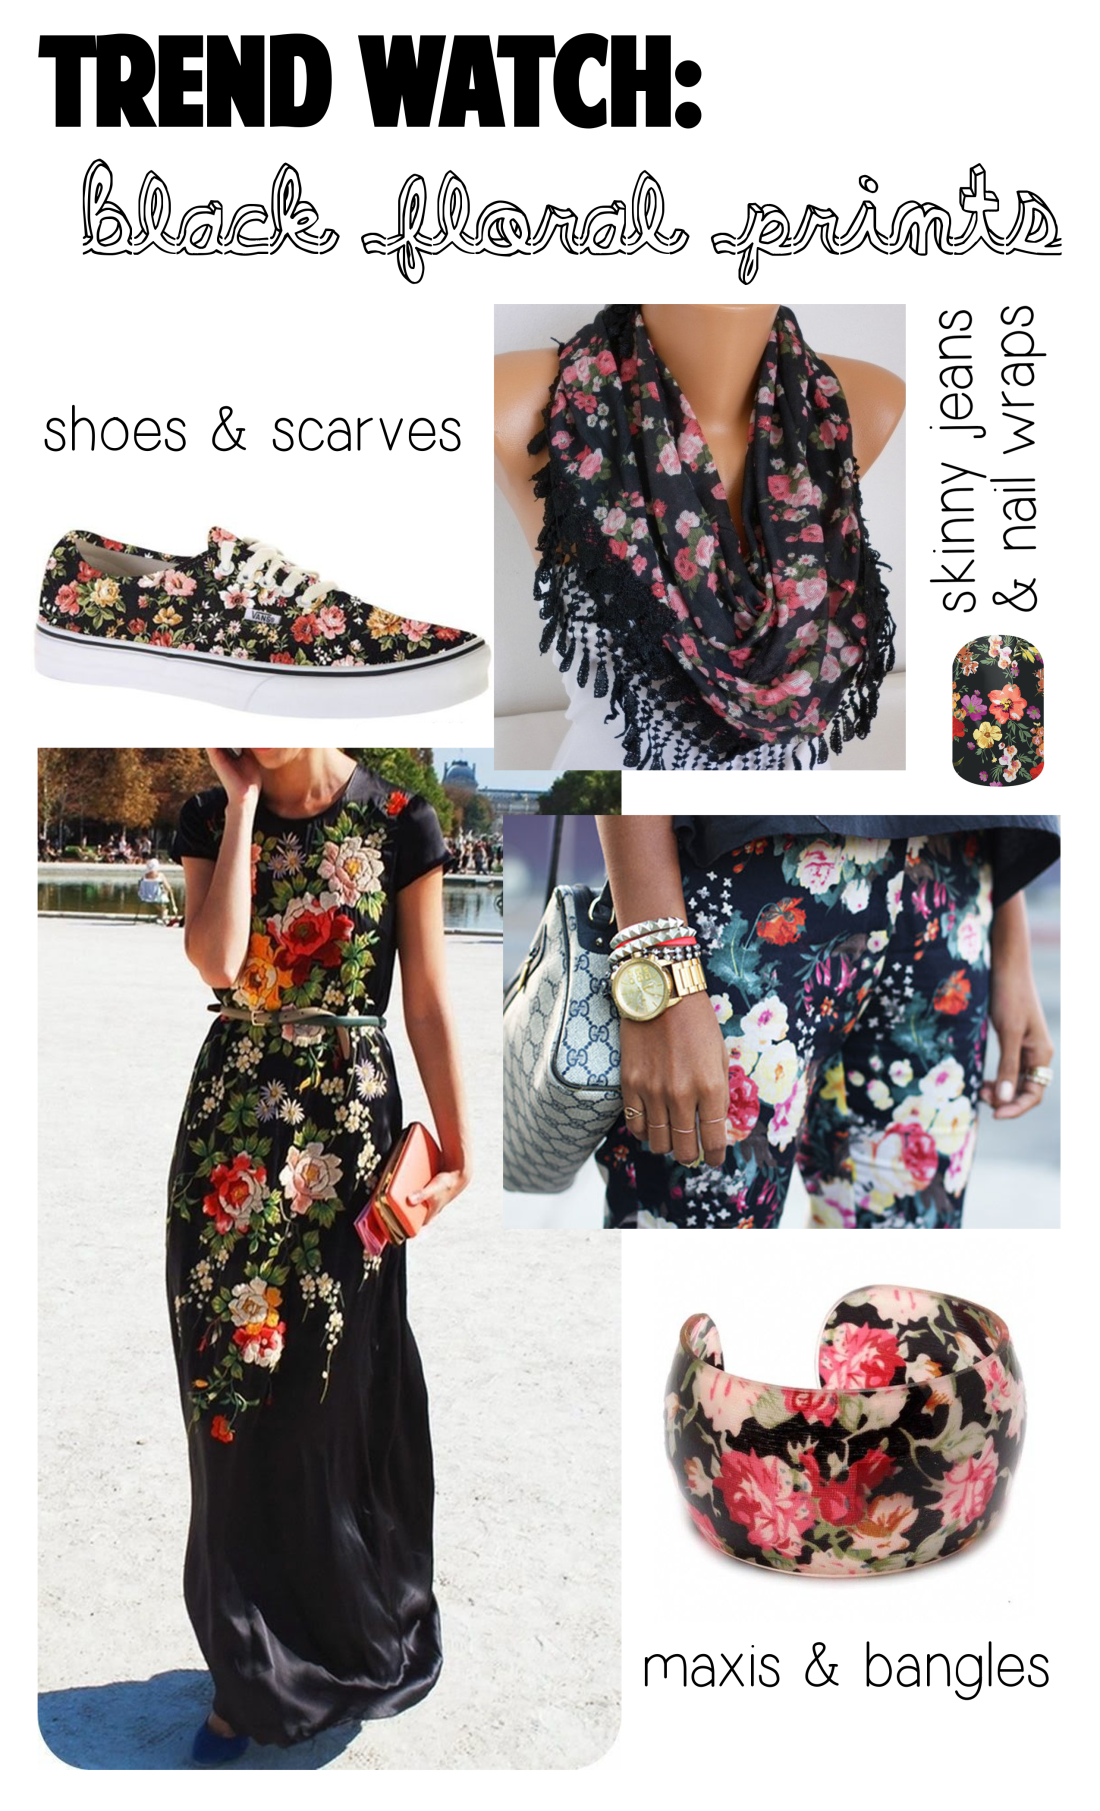 trendwatch black floral